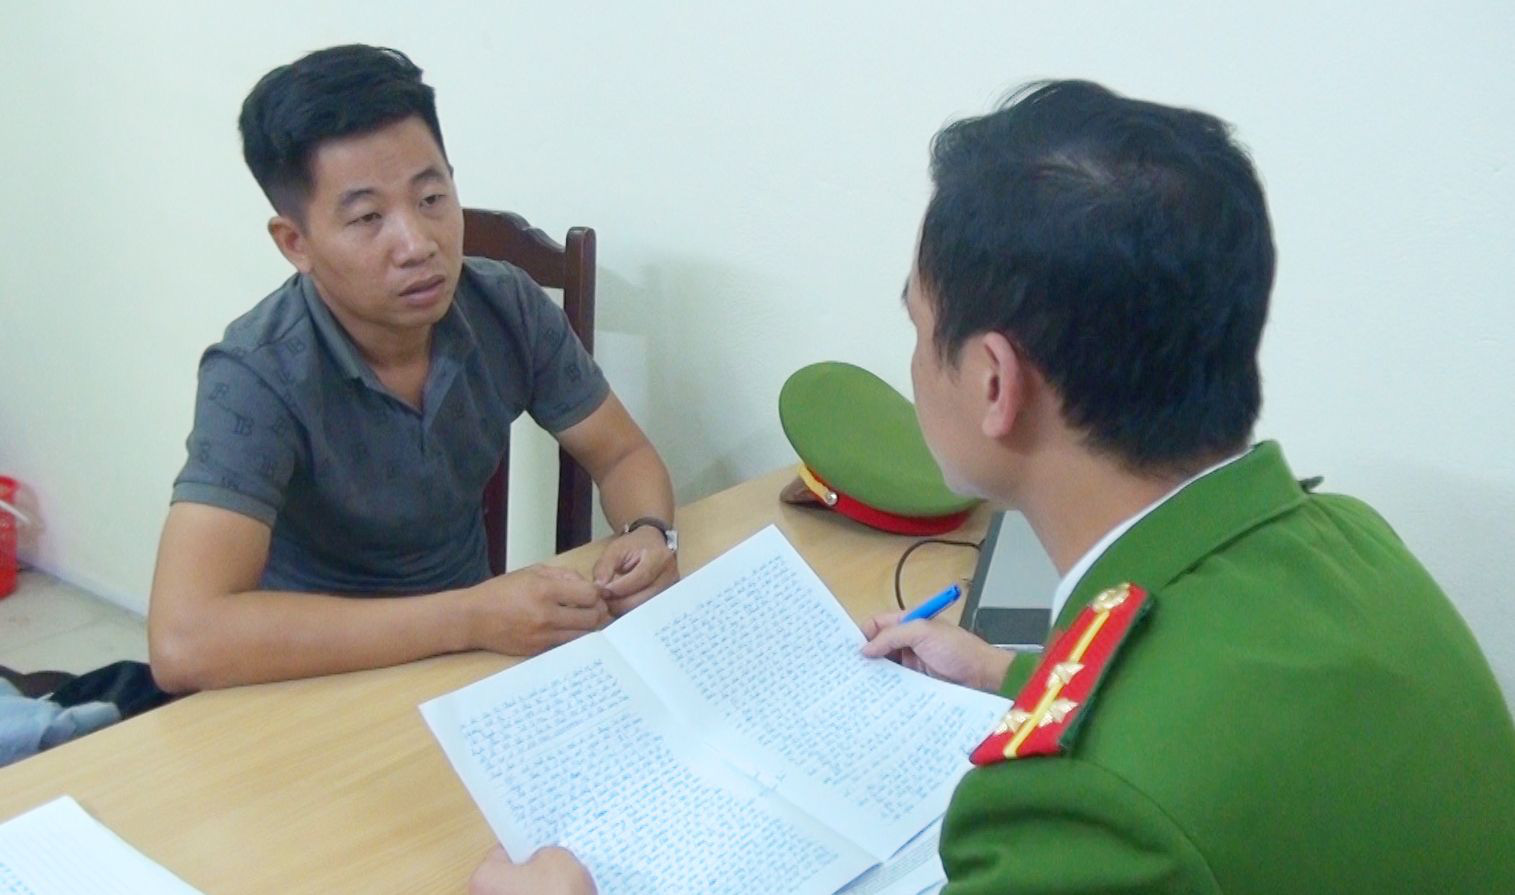 Nguyen Chau Tuan works with a police officer in Thanh Hoa Province, Vietnam in this supplied photo.